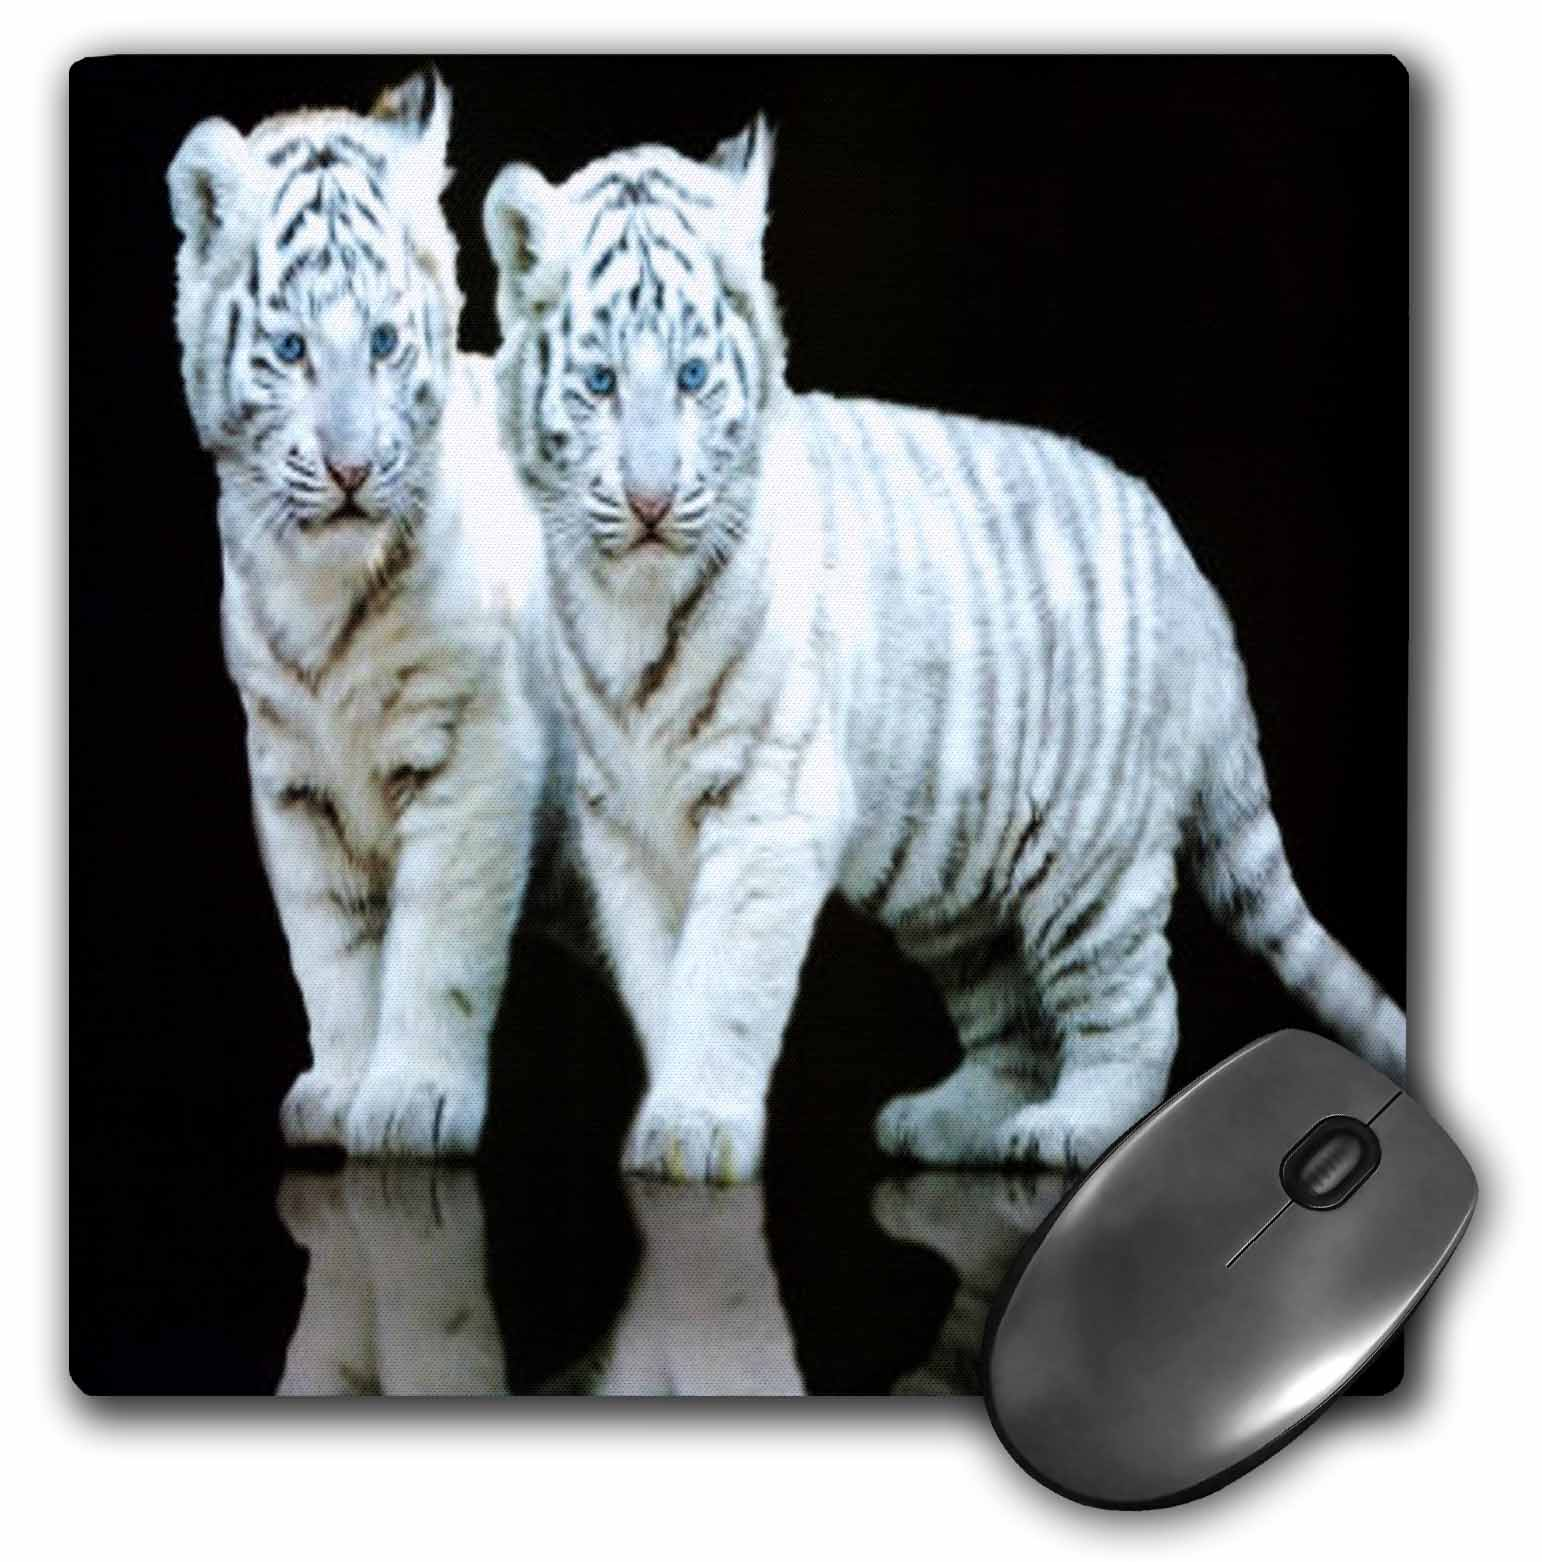 3dRose White Tiger Cubs, Mouse Pad, 8 by 8 inches